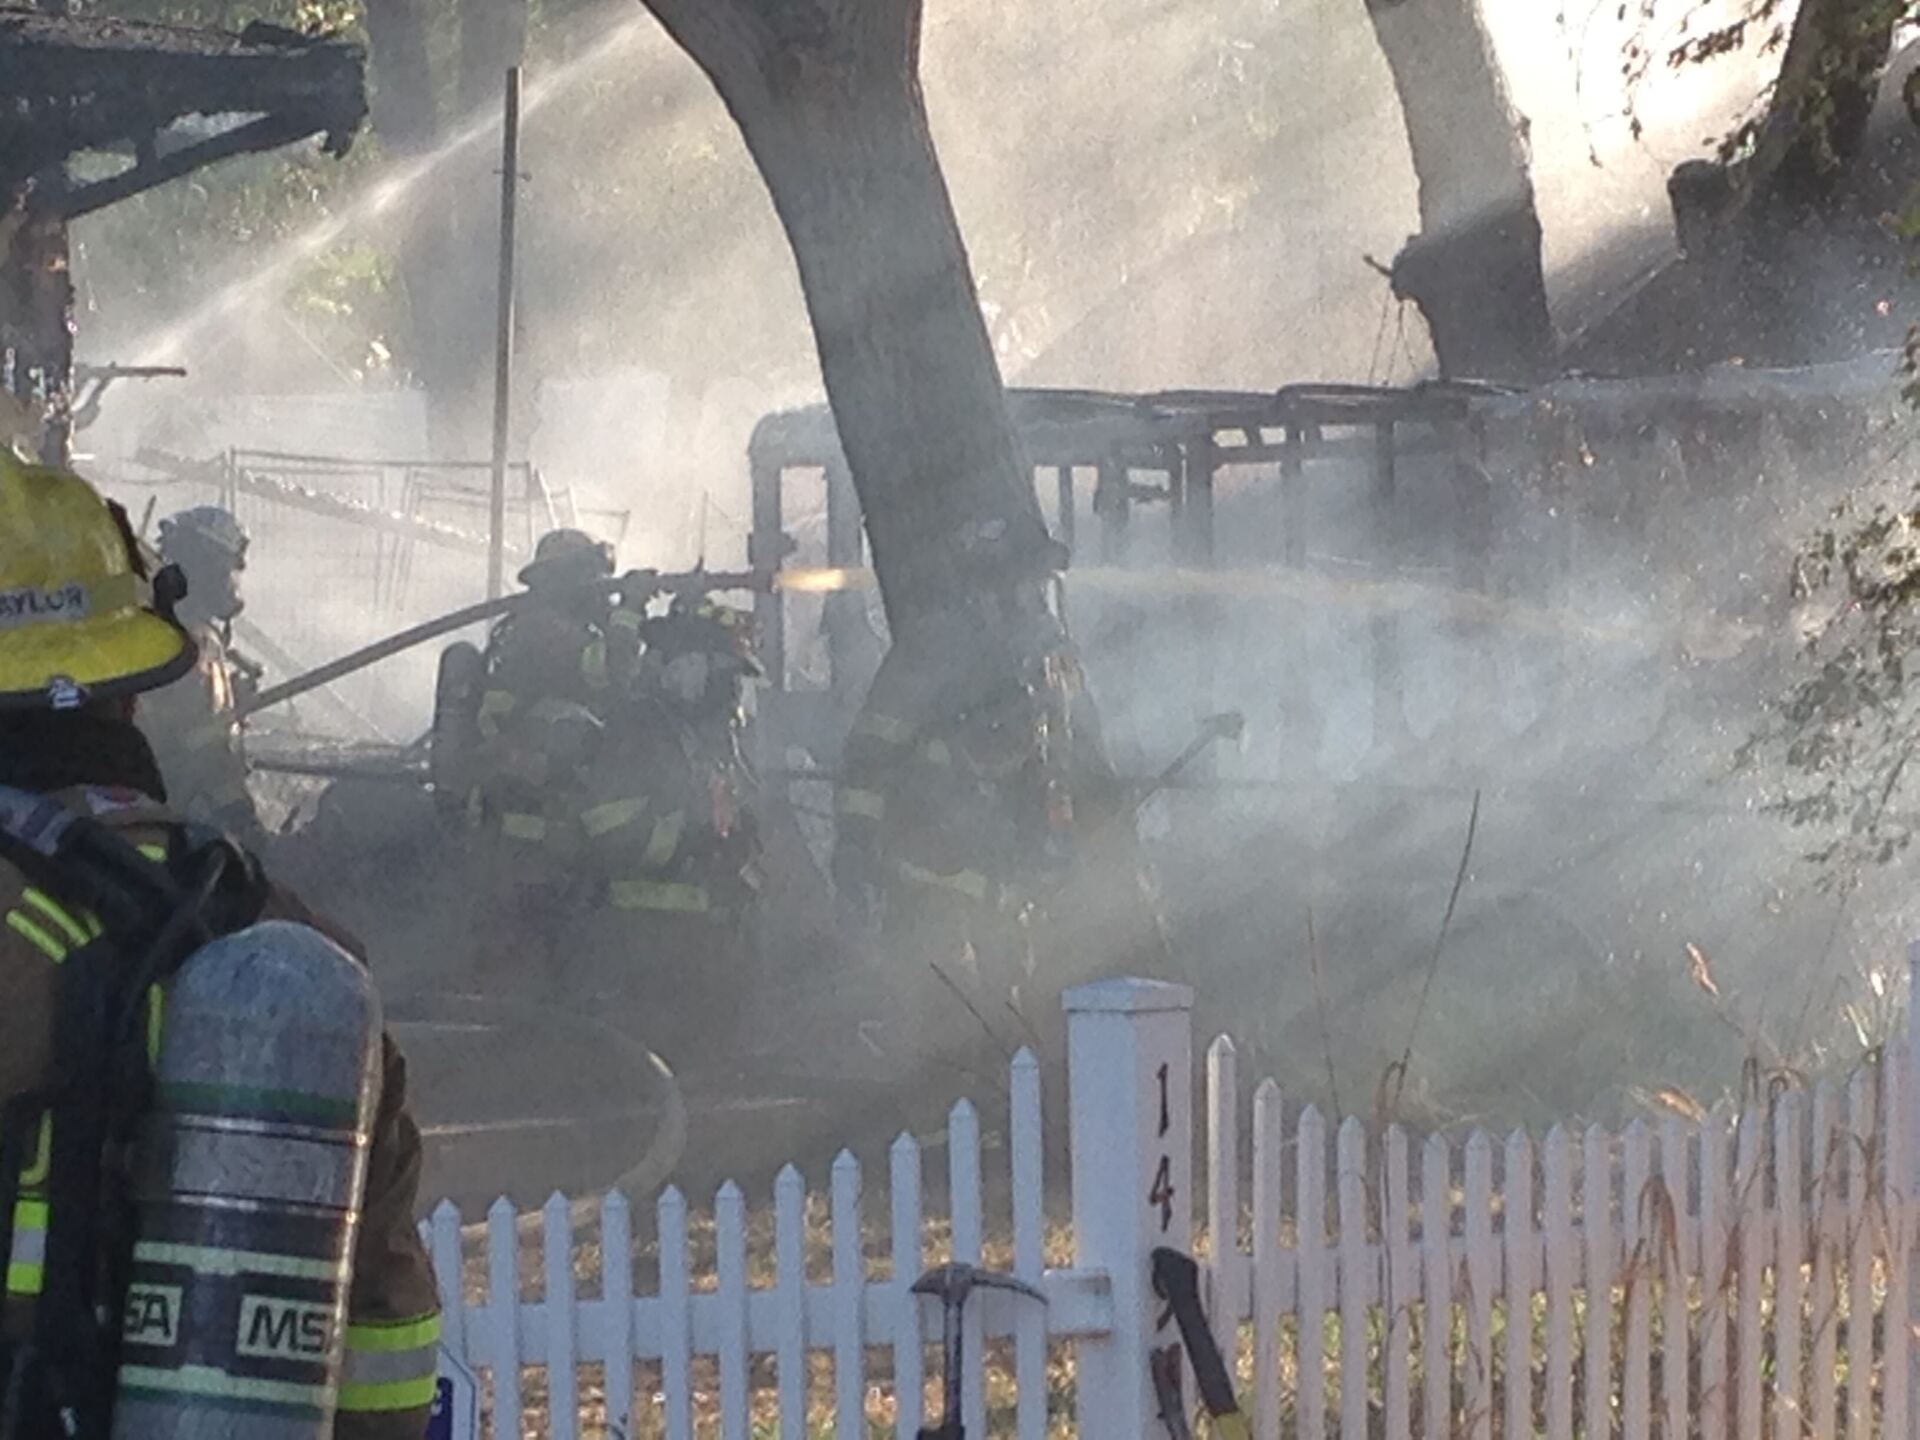 Photos: Firefighters respond to 2 alarm fire that burns 2 homes in West ValleyCity